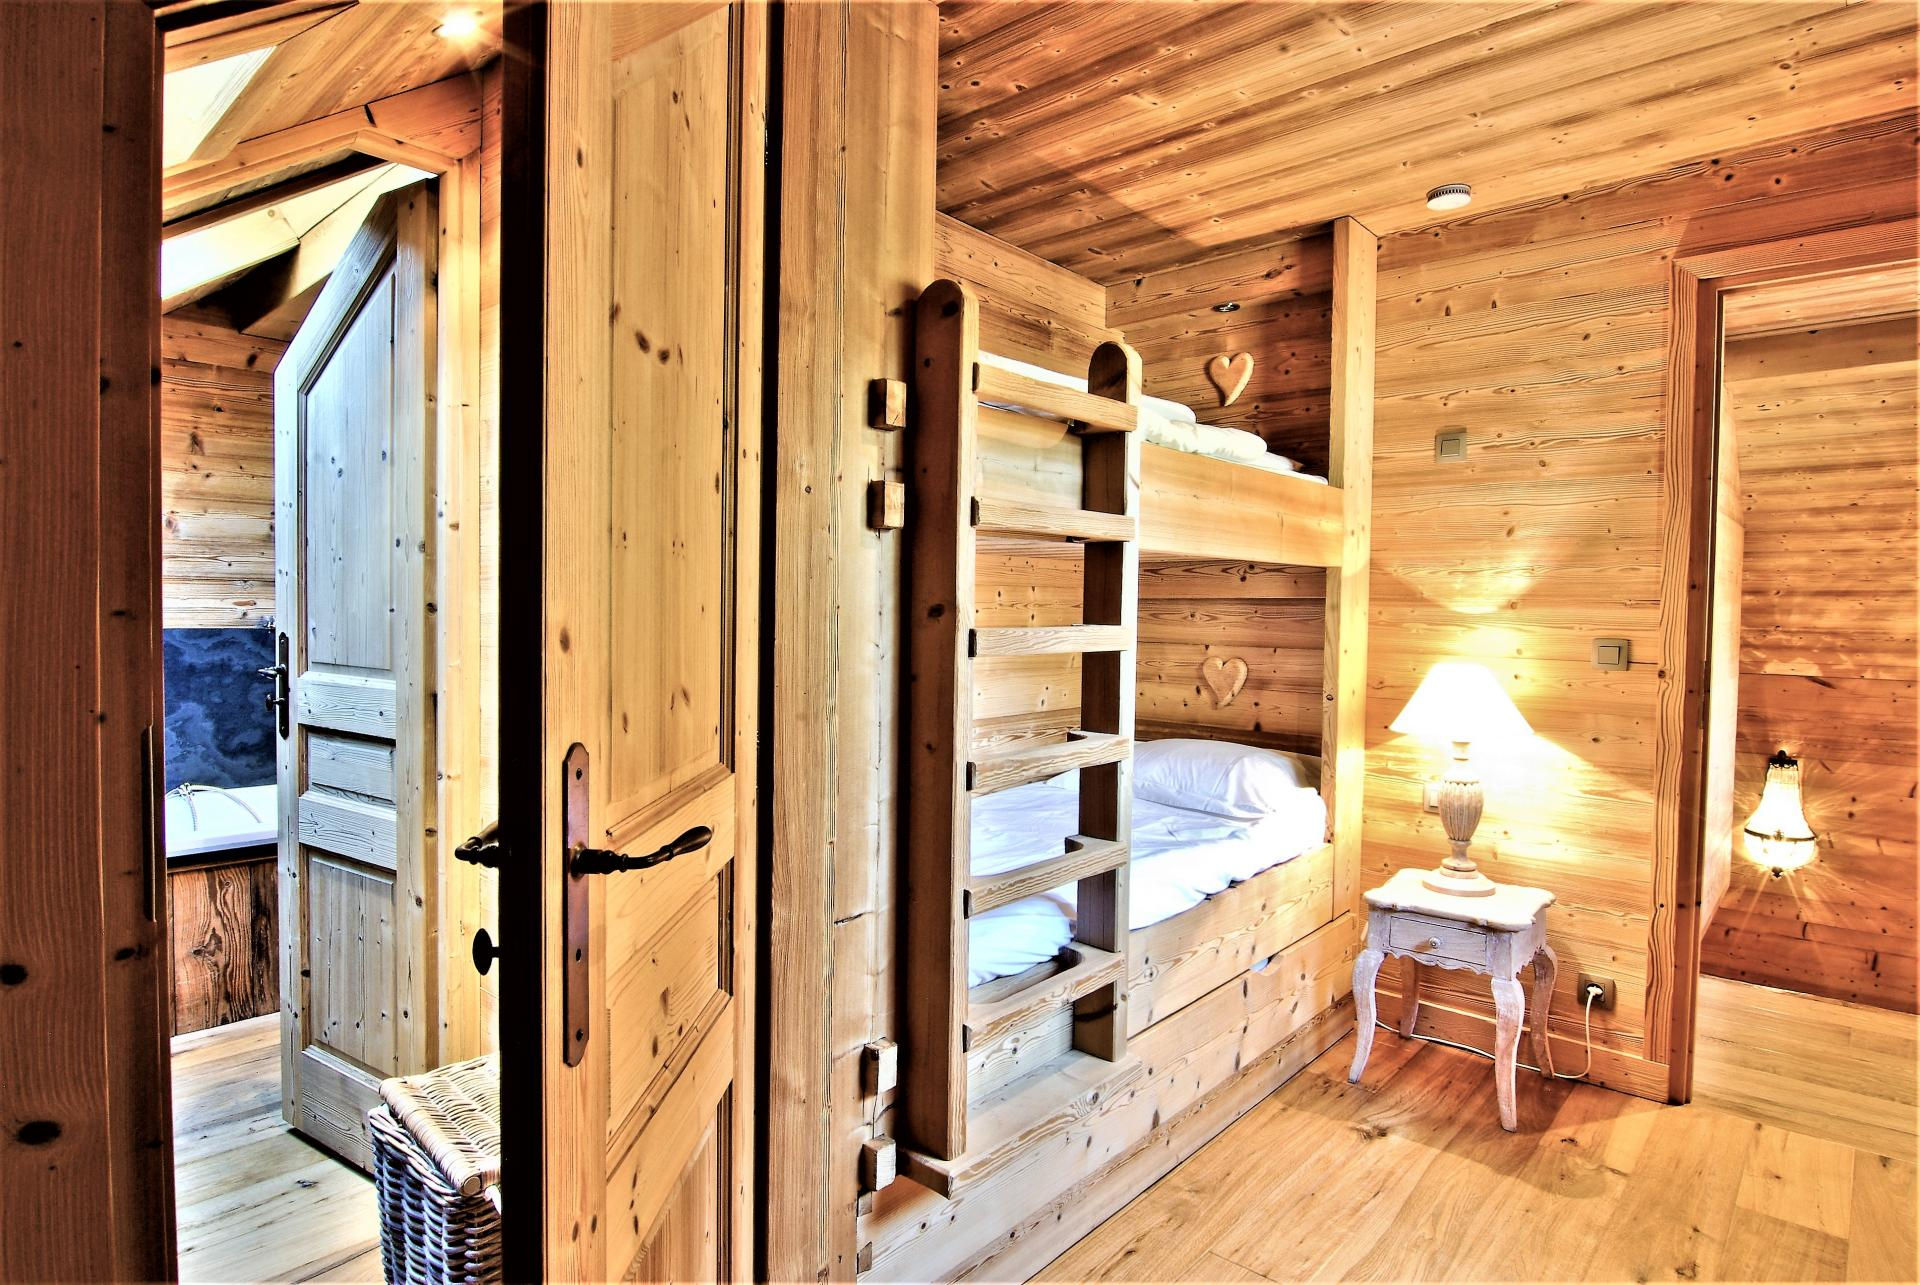 BUNK BEDS FOR CHILDREN WITH A SHARED BATHROOM